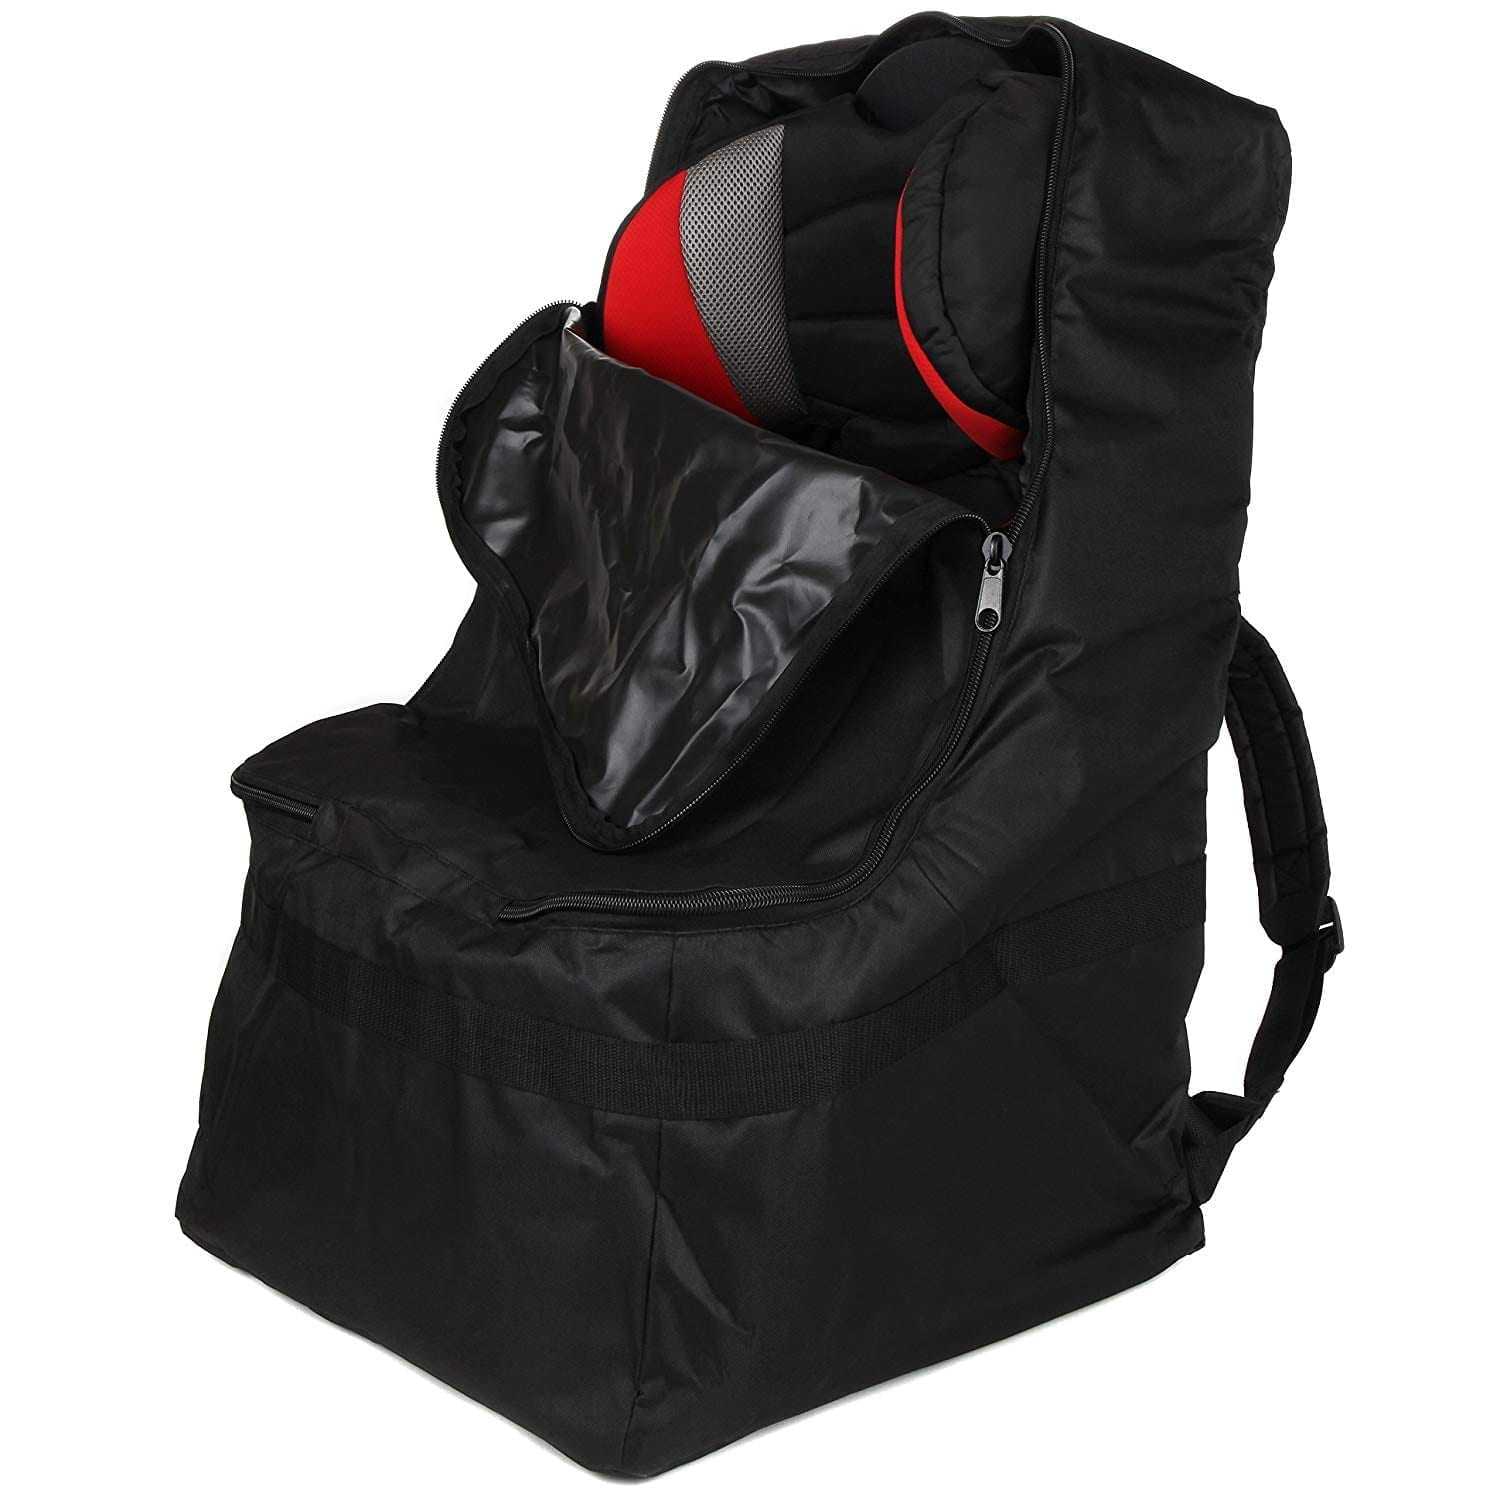 Full-Size Car Seat Travel Bag – Black Car Seat Carrier and car Seat Bag for Airplane